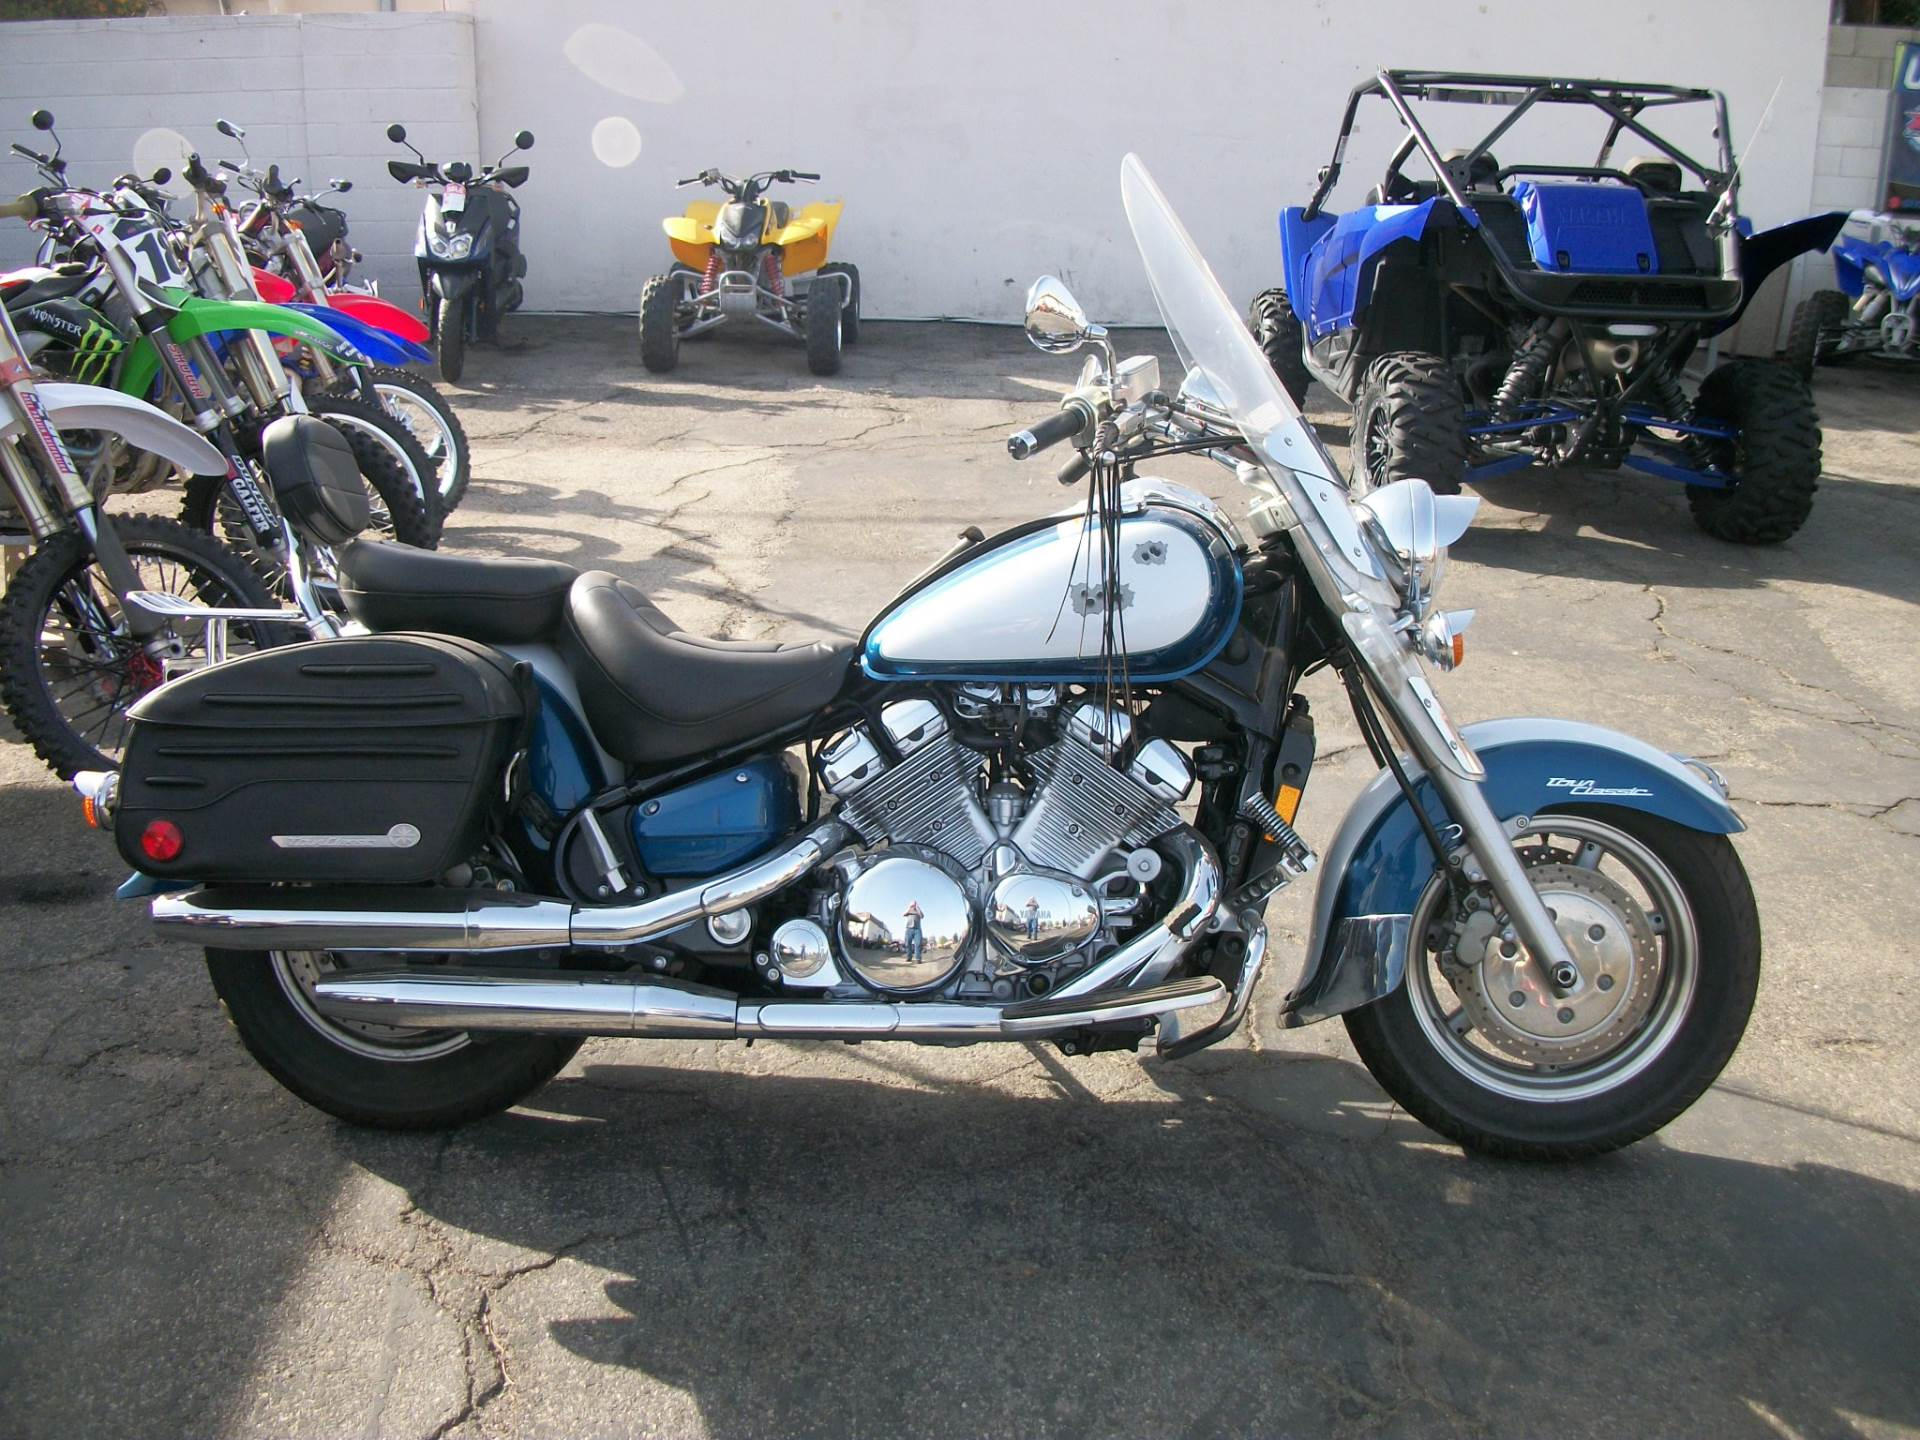 1996 Yamaha ROYAL STAR 1300 V-4 in Simi Valley, California - Photo 1